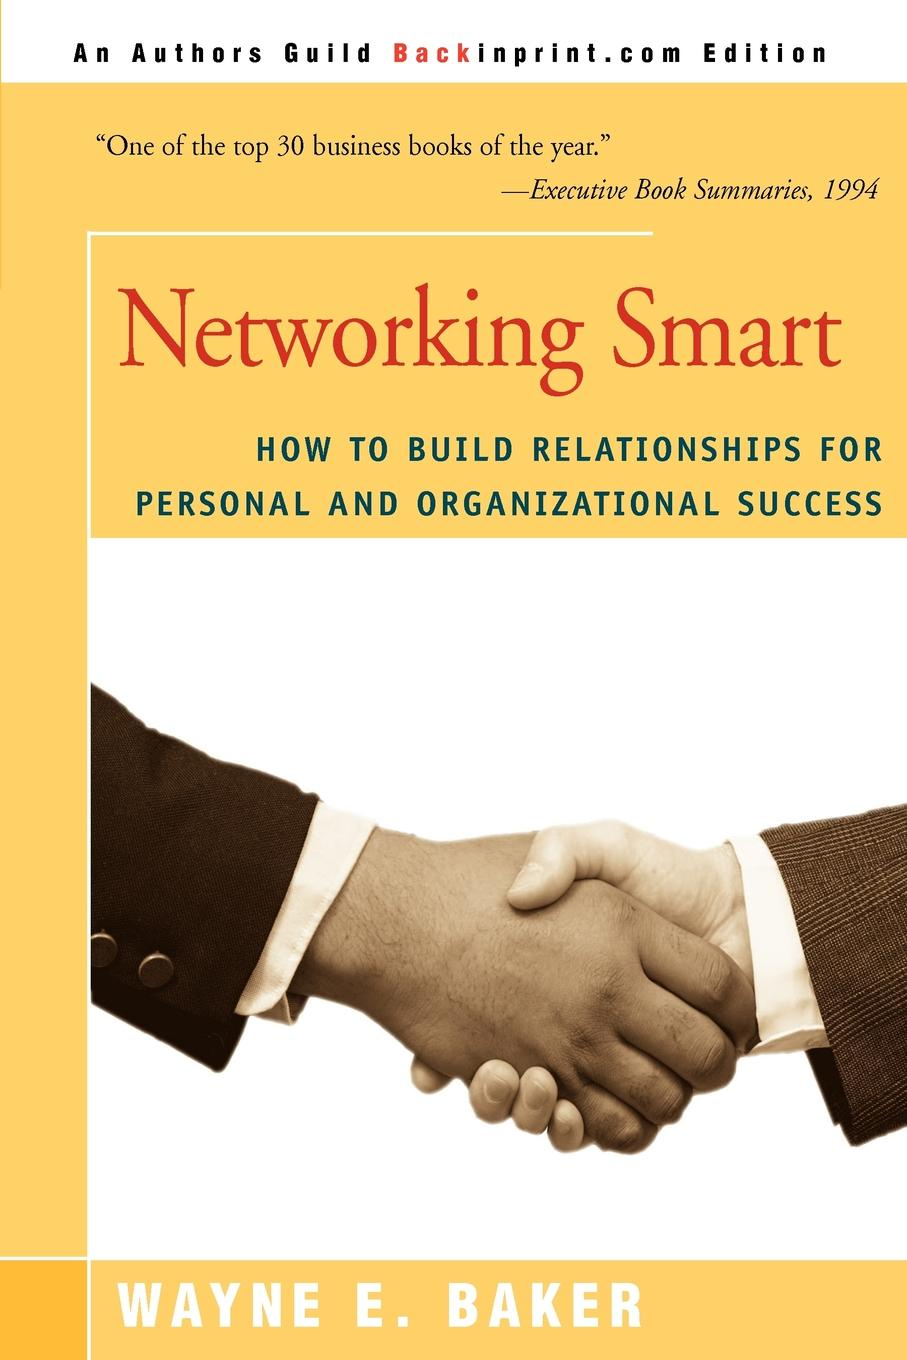 лучшая цена Wayne E. Baker Networking Smart. How to Build Relationships for Personal and Organizational Success